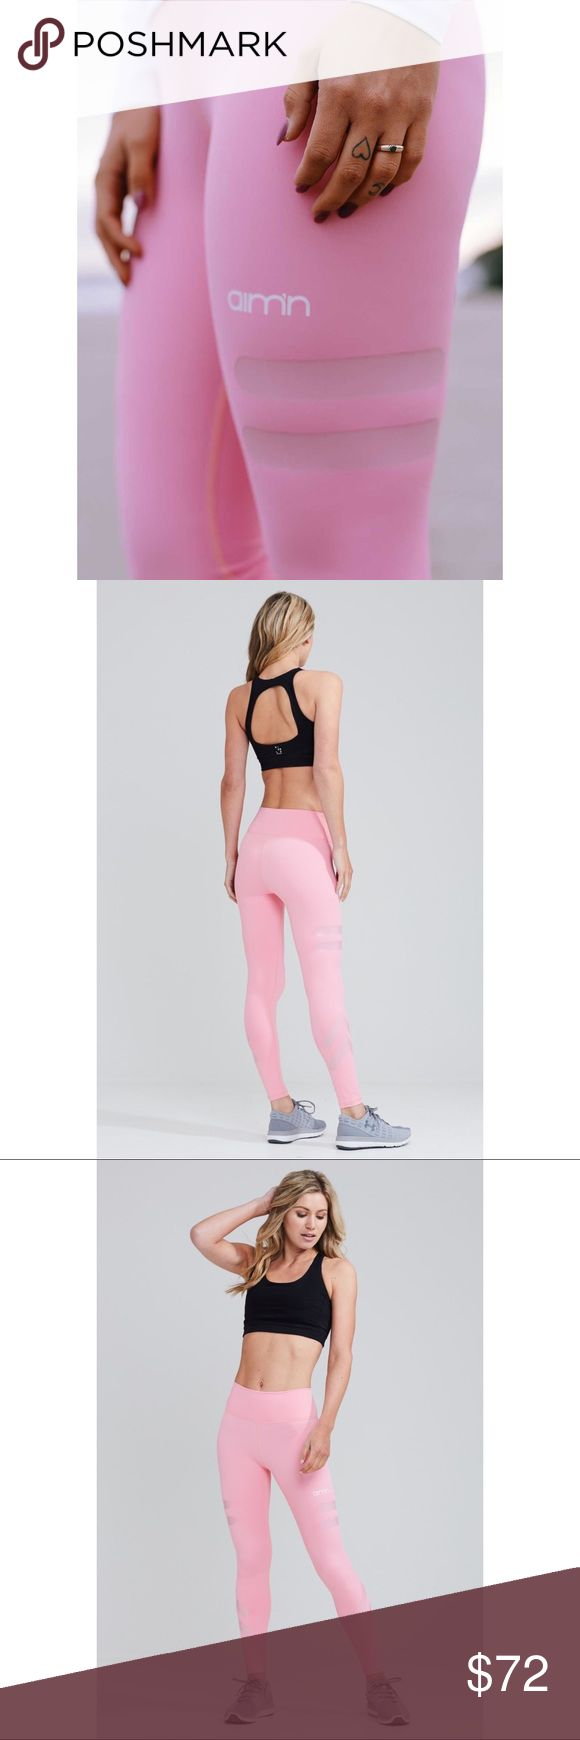 ✨⏩ AIM*N Dusty Pink Tribe Tights/Leggings, S/M ☑️ 👐🏼🔥💓 HOT ITEM! ✨ Gorgeous, luxe leggings by AU activewear brand, AIM'N. Flattering high-waist design &signature contour fit that accentuates the best of your natural features! Sport stripe accents on mid-thigh. Smooth, second-skin feel fabric in a vibrant, soft bubblegum pink. Brand NEW condition without tags, in org. packaging. Worn once for errands (pink is not my color). Tag Sz. M (Fits S/M within 3-6). *Brand is Aim'n, not lululemon…